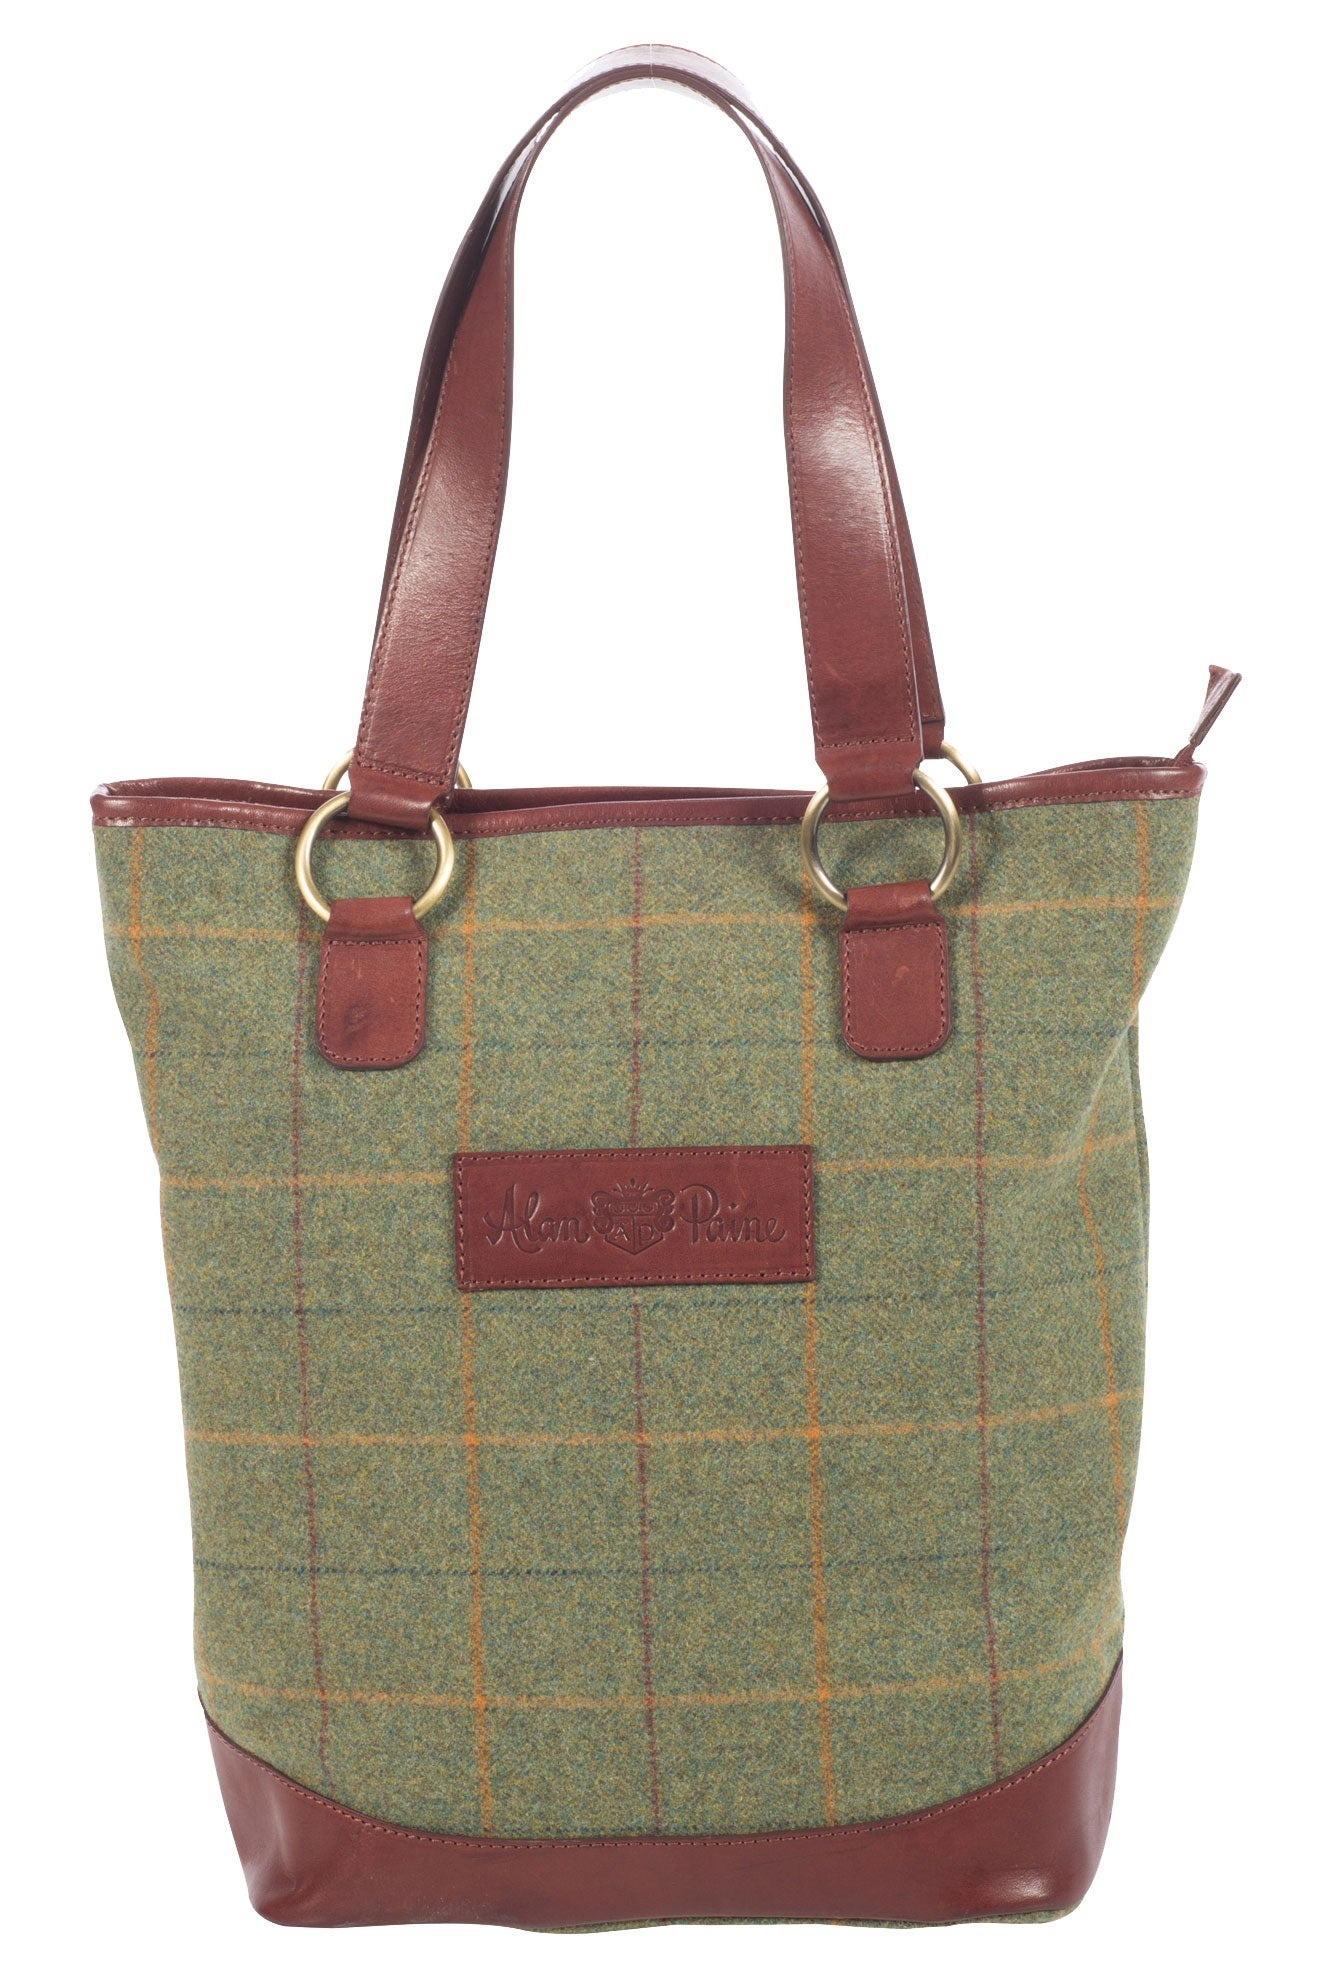 Alan Paine Tweed Tote Bag | Landscape wool tweed